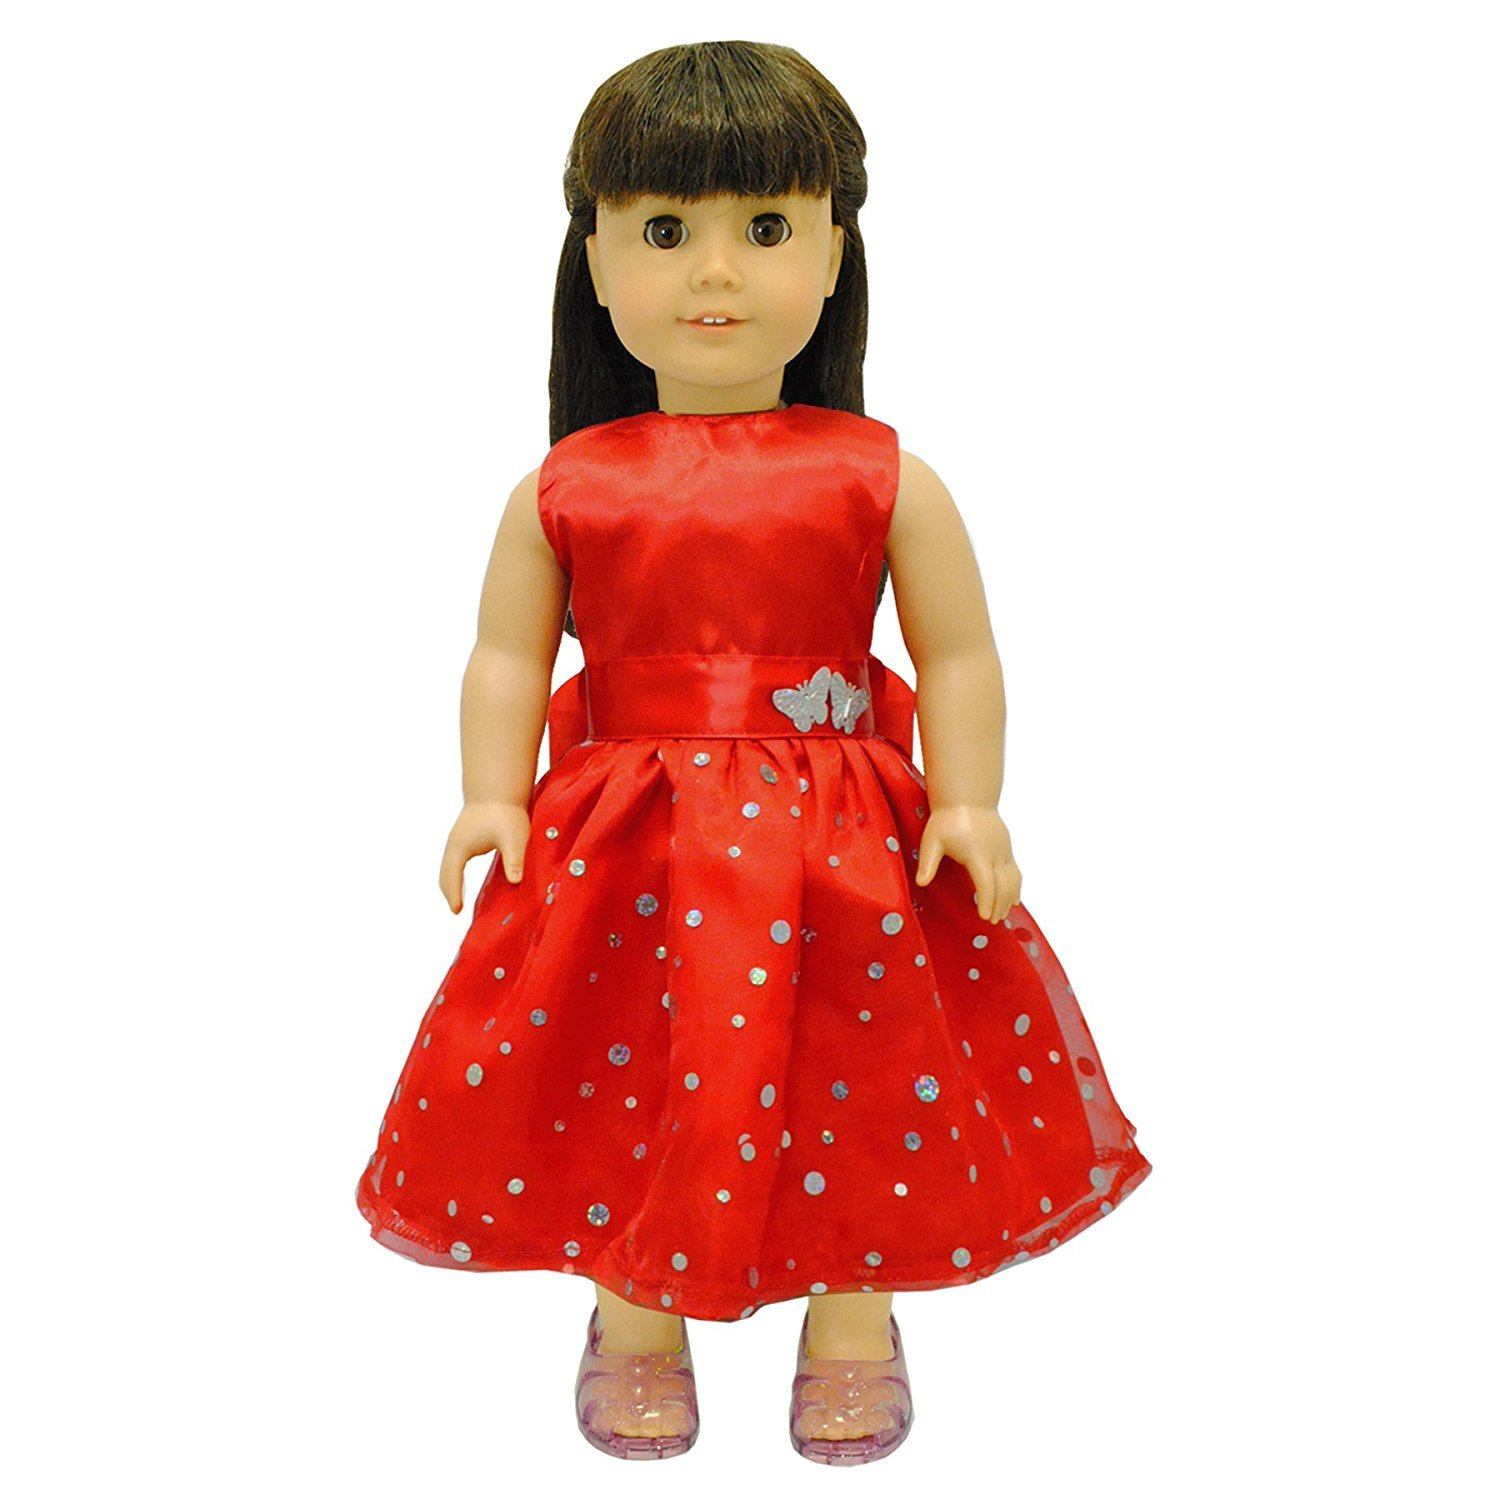 Fit For 18/'/' American Girl Doll Accessories Handmade New Meet Outfit Red Socks